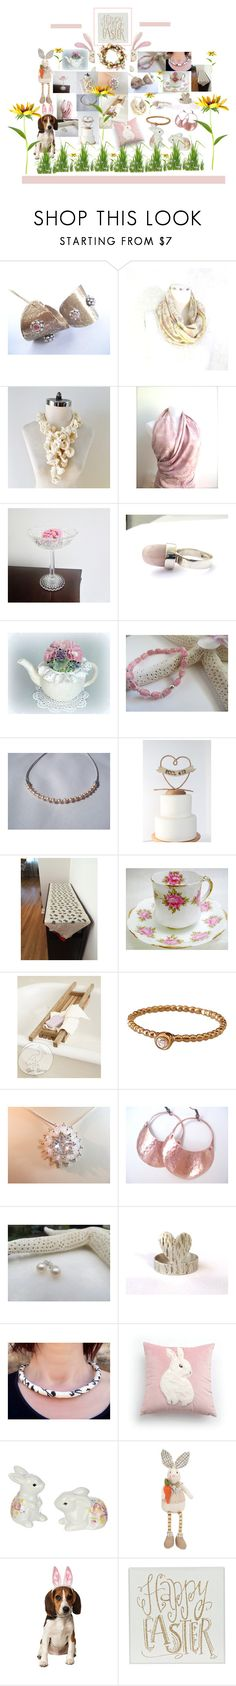 """""""Happy Easter"""" by therusticpelican ❤ liked on Polyvore featuring Melrose International, Rubie's Costume Co., modern, contemporary, rustic and vintage"""